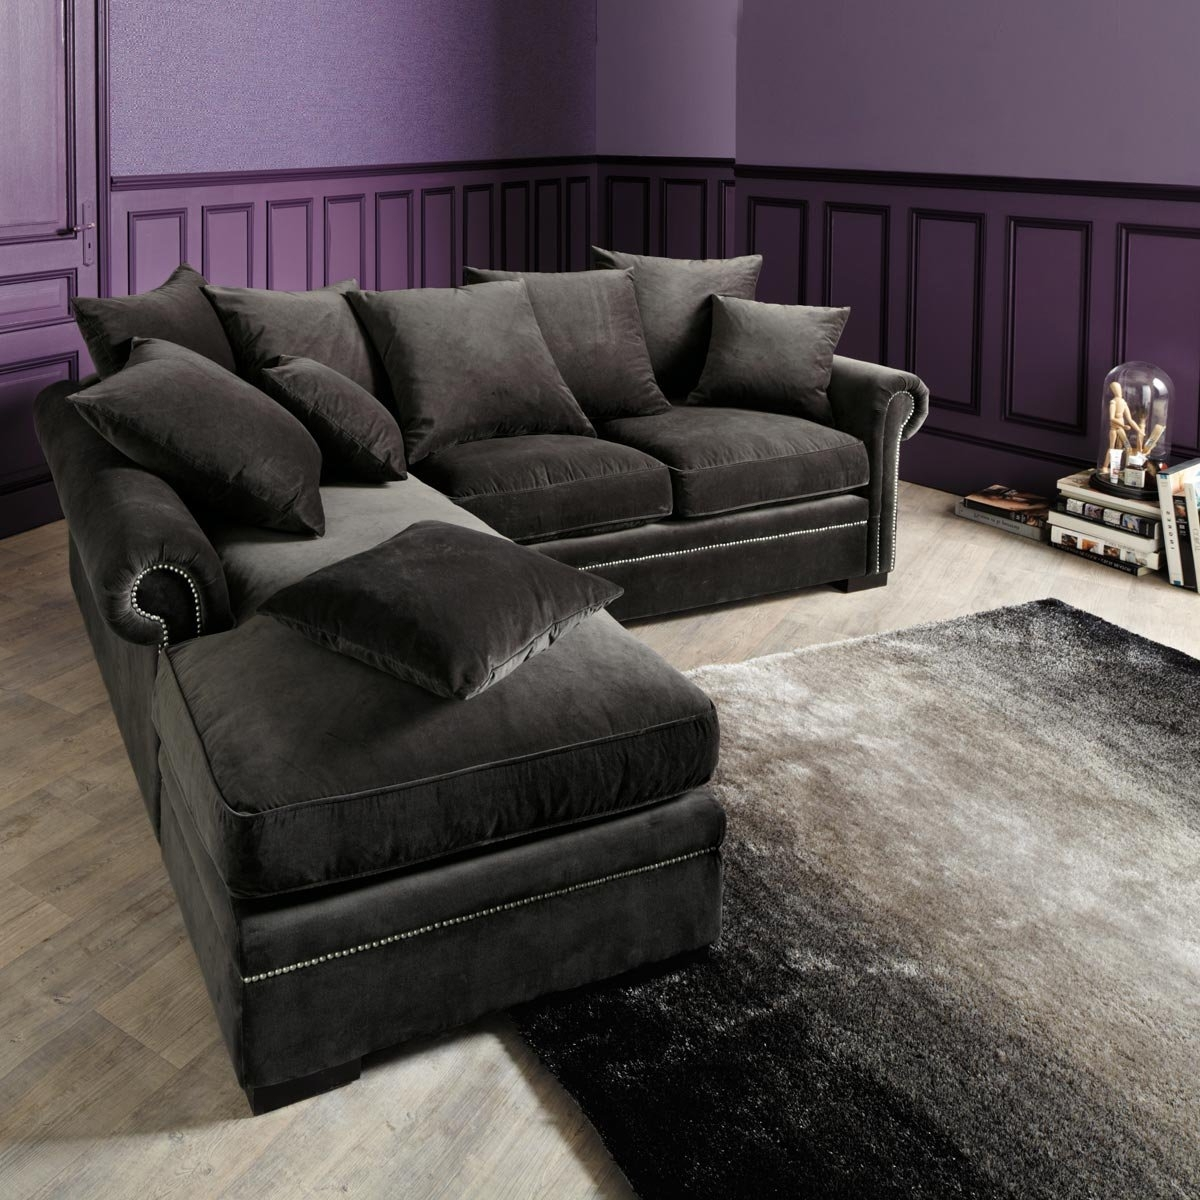 Preferred Dark Grey Velvet Sectional Couch With Chaise And Pillows – Decofurnish With Grey Chaise Sectionals (View 6 of 15)